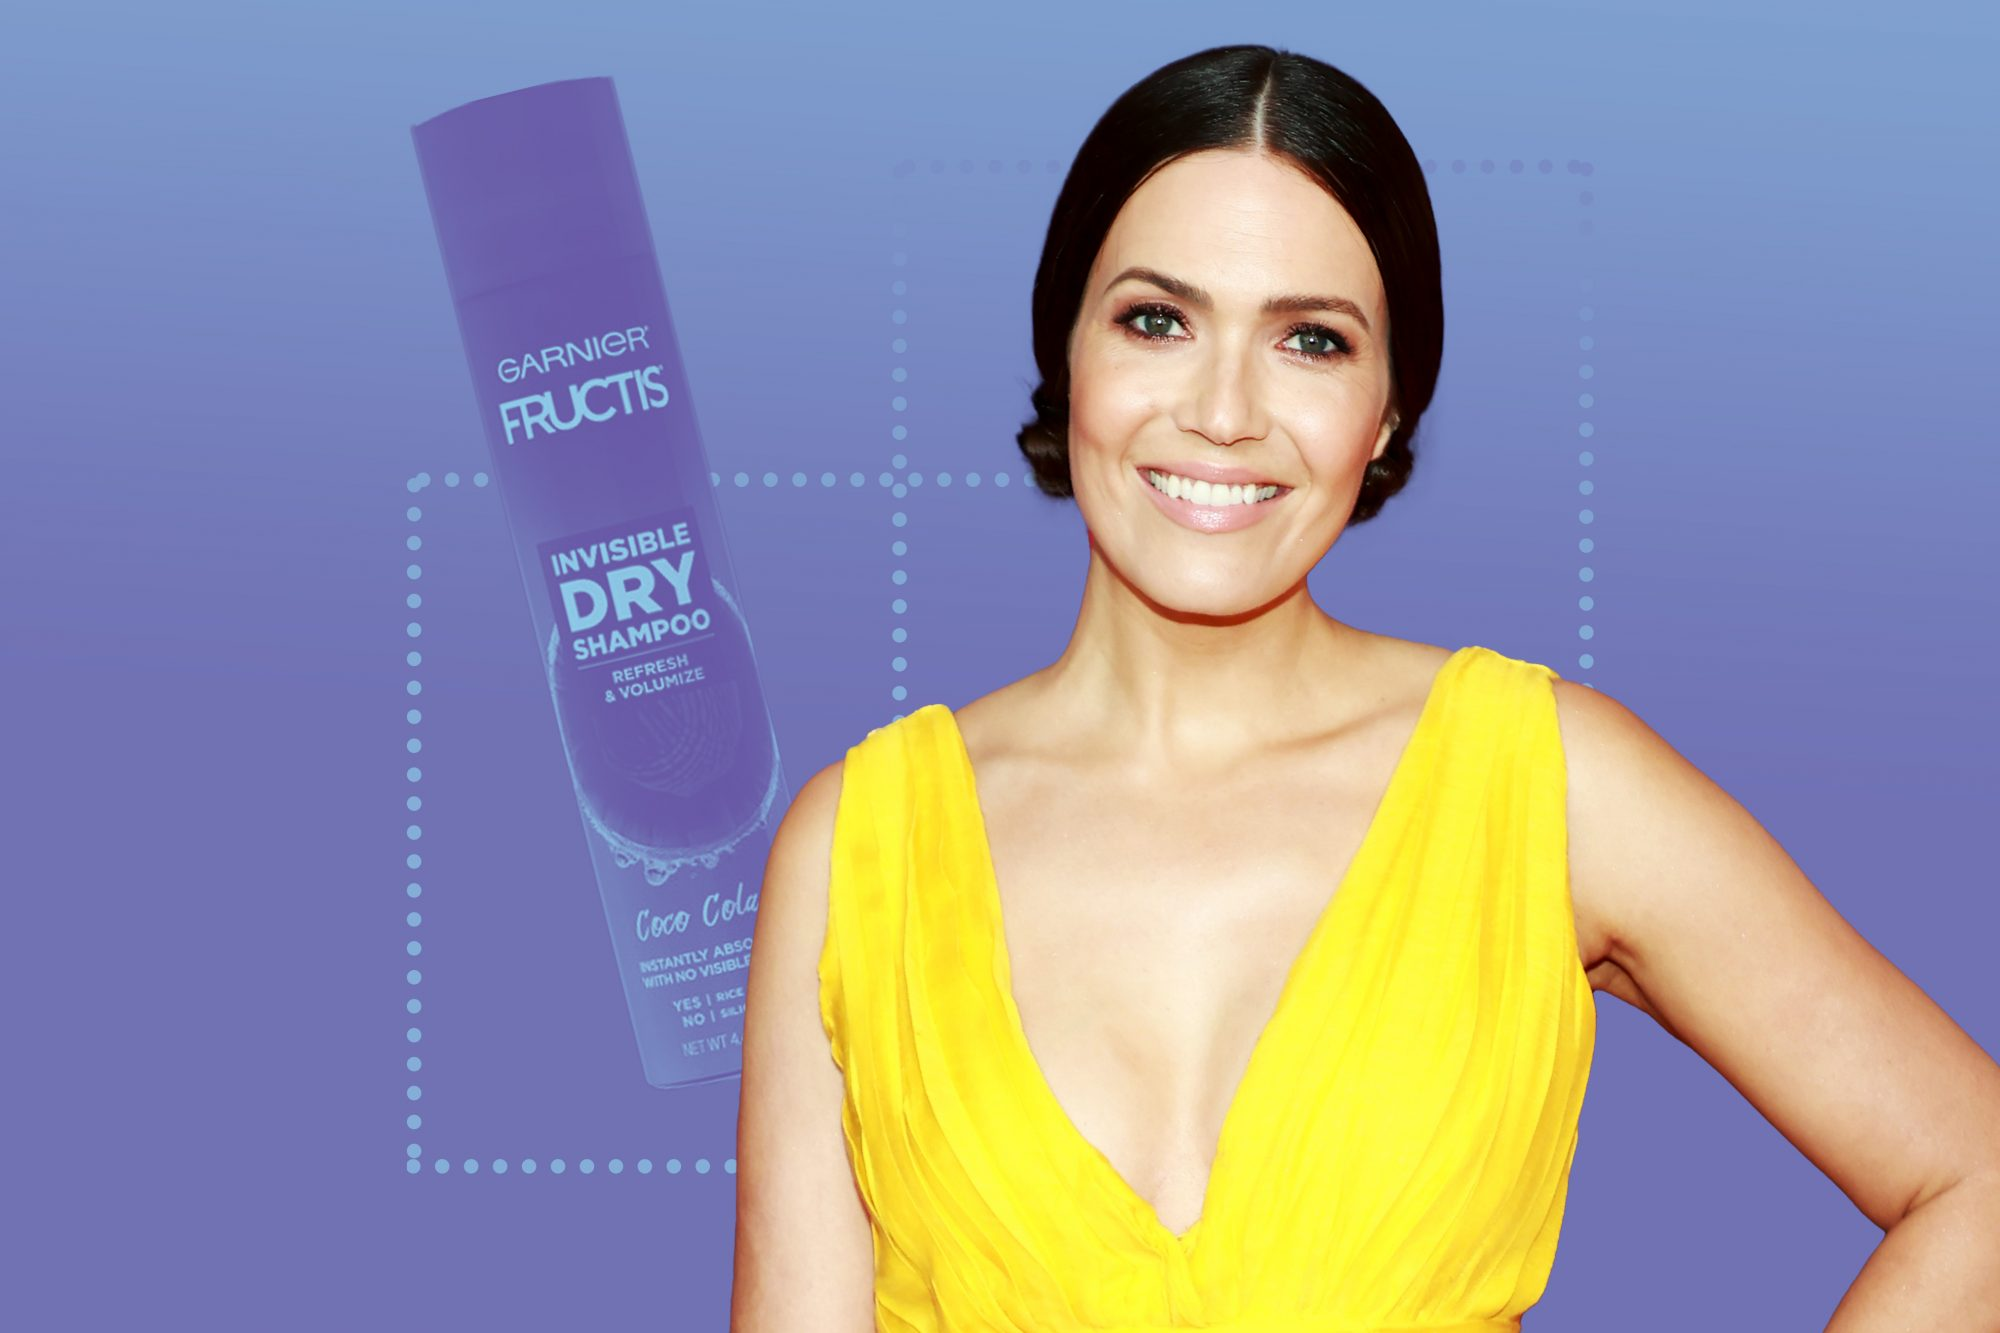 Mandy-Moore-Went-Through-15-Bottles-of-This-Dry-Shampoo-During-Quarantine-GettyImages-1318373094